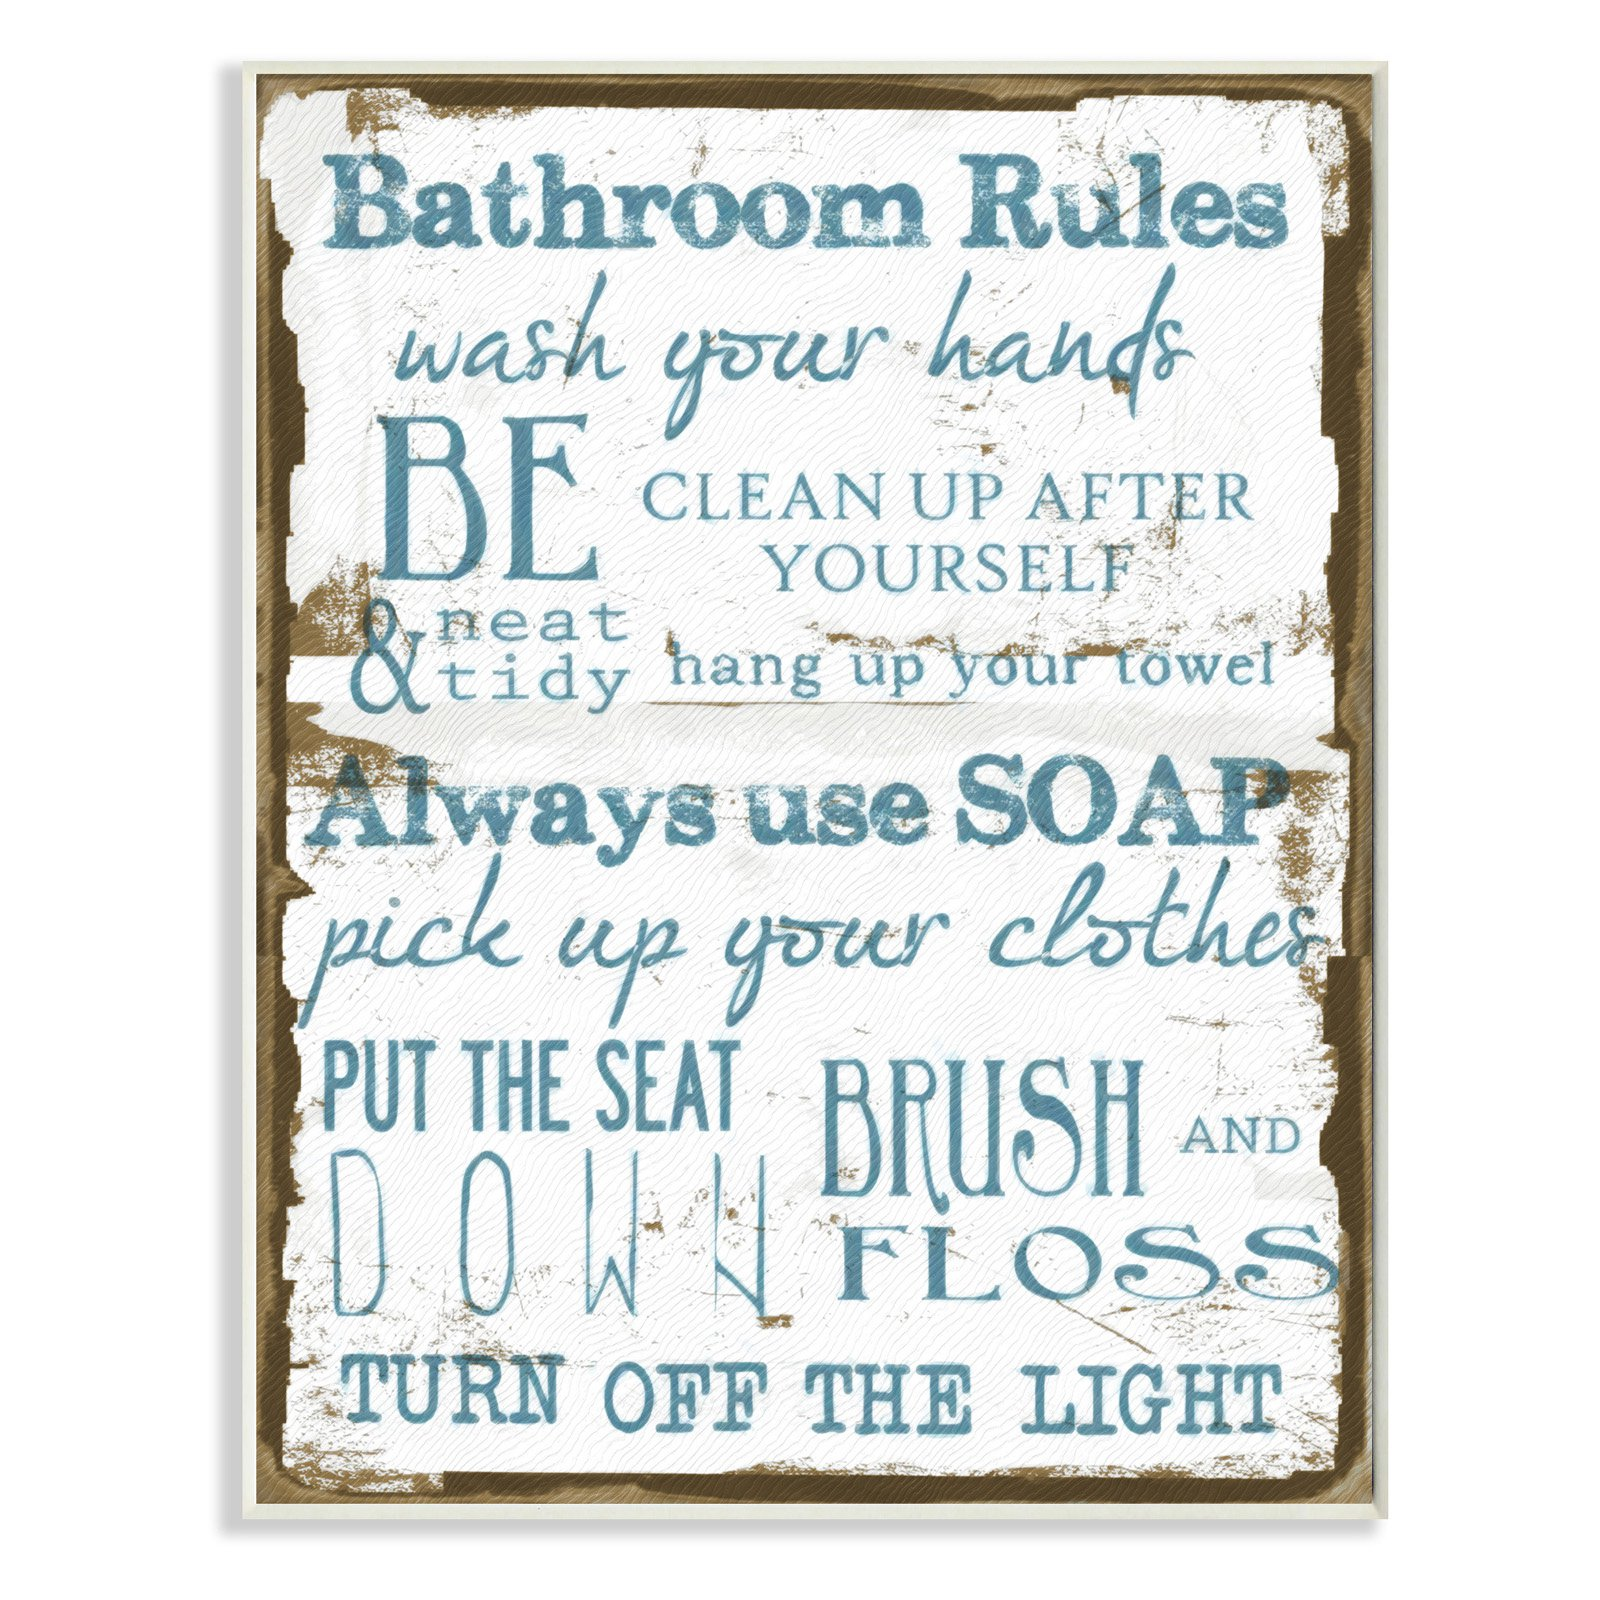 Brown and Blue Classic Bathroom Rules Wall Plaque Art by Stupell Industries